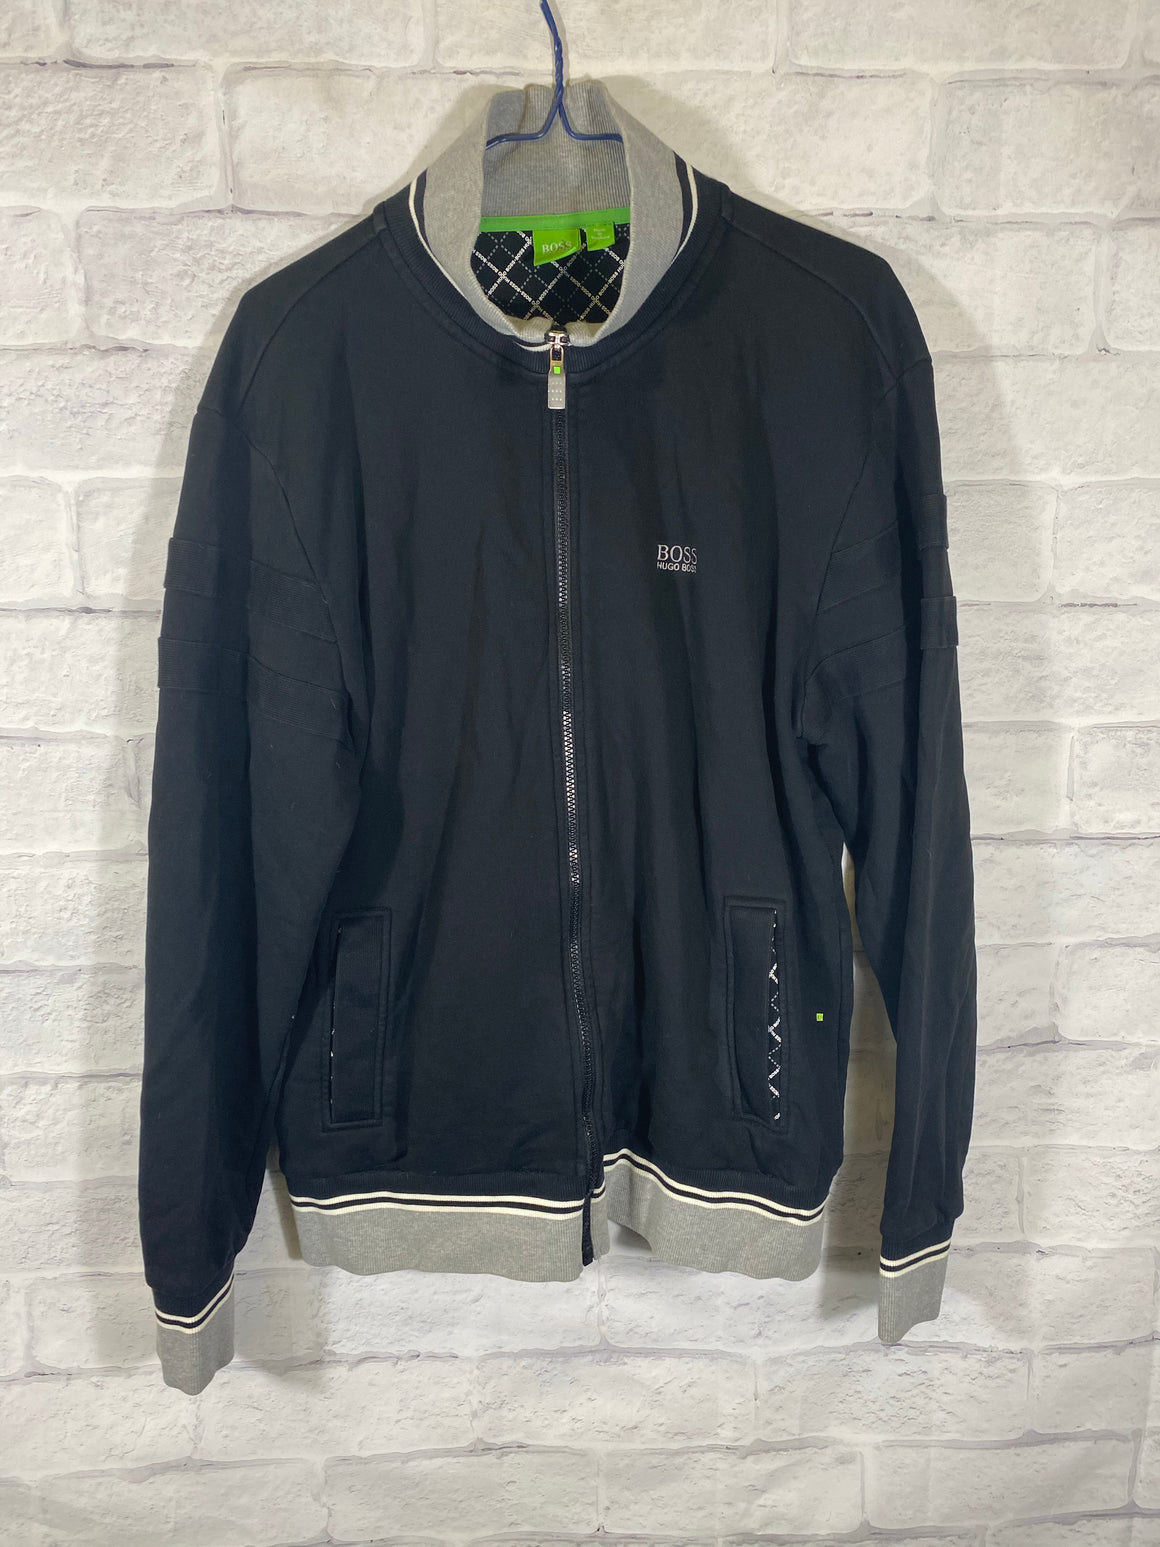 Hugo Boss fullzip track jacket SZ mens Large